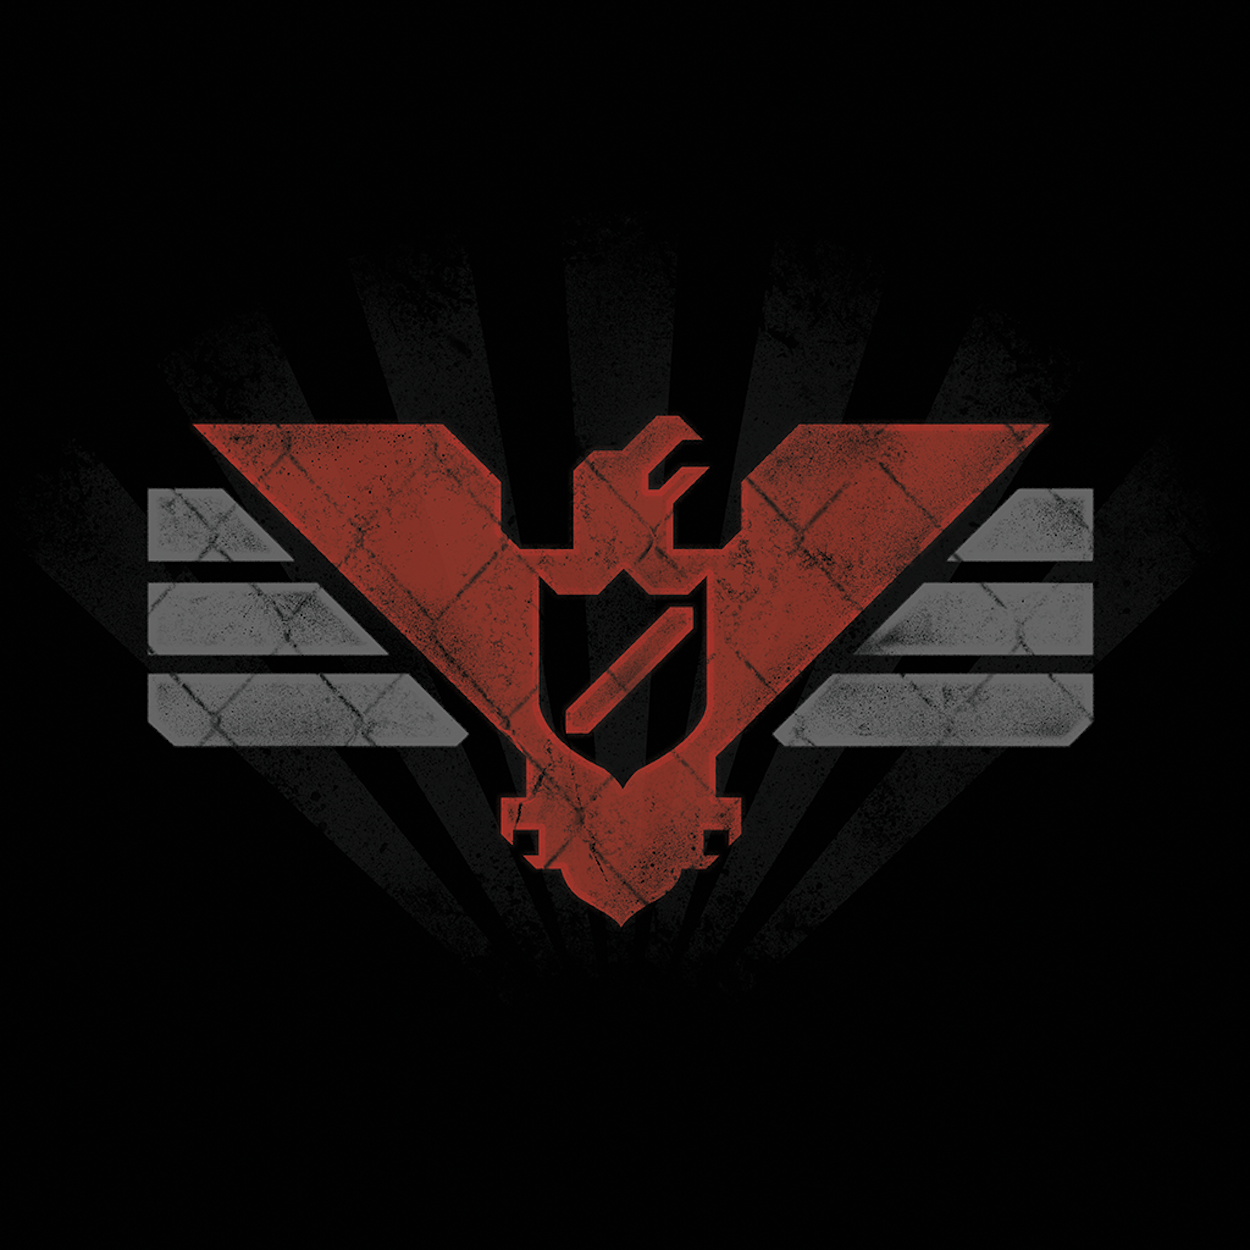 File:Steamworkshop collection 138290904 collection branding.png